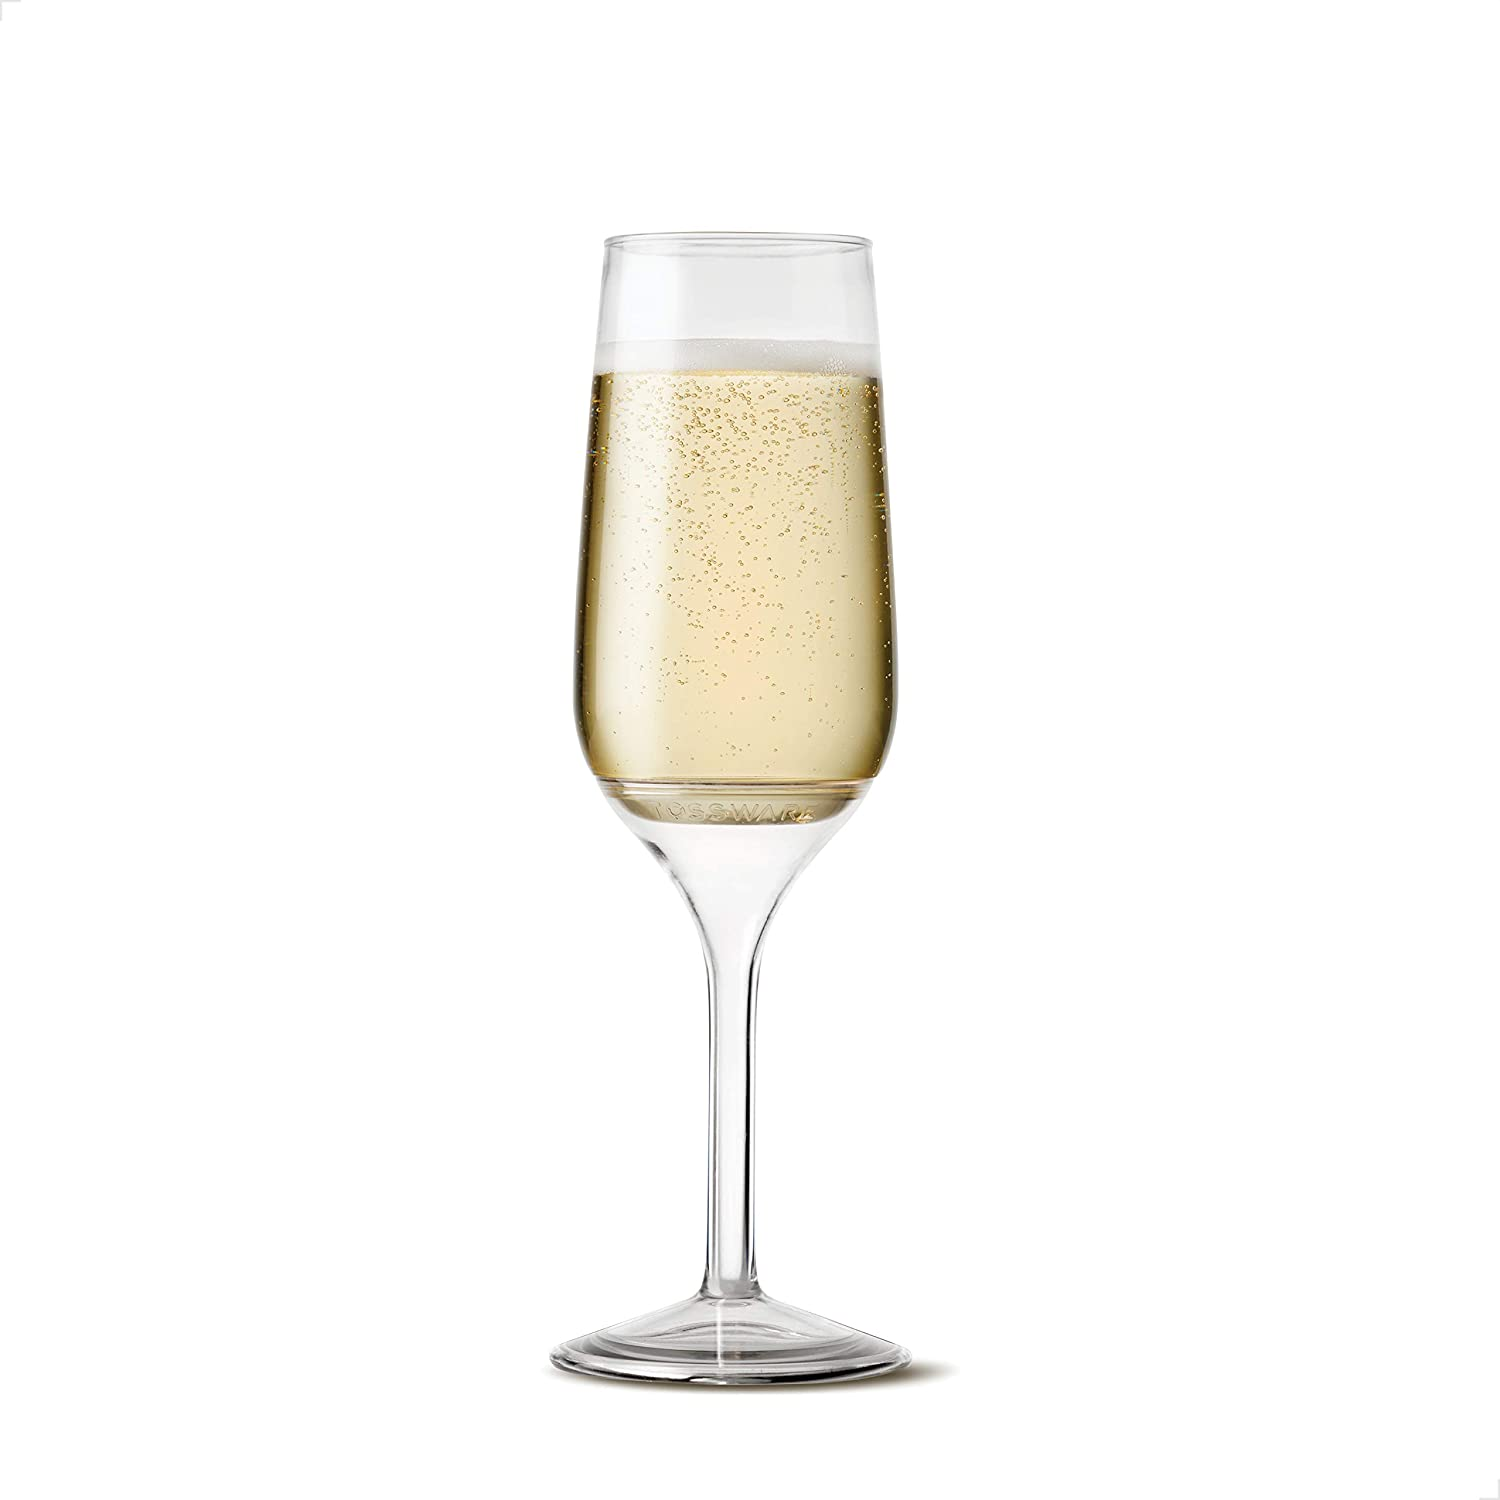 TOSSWARE 6oz Stemmed Flute SET OF 12, Recyclable, Unbreakable & Crystal Clear Plastic Champagne Glasses